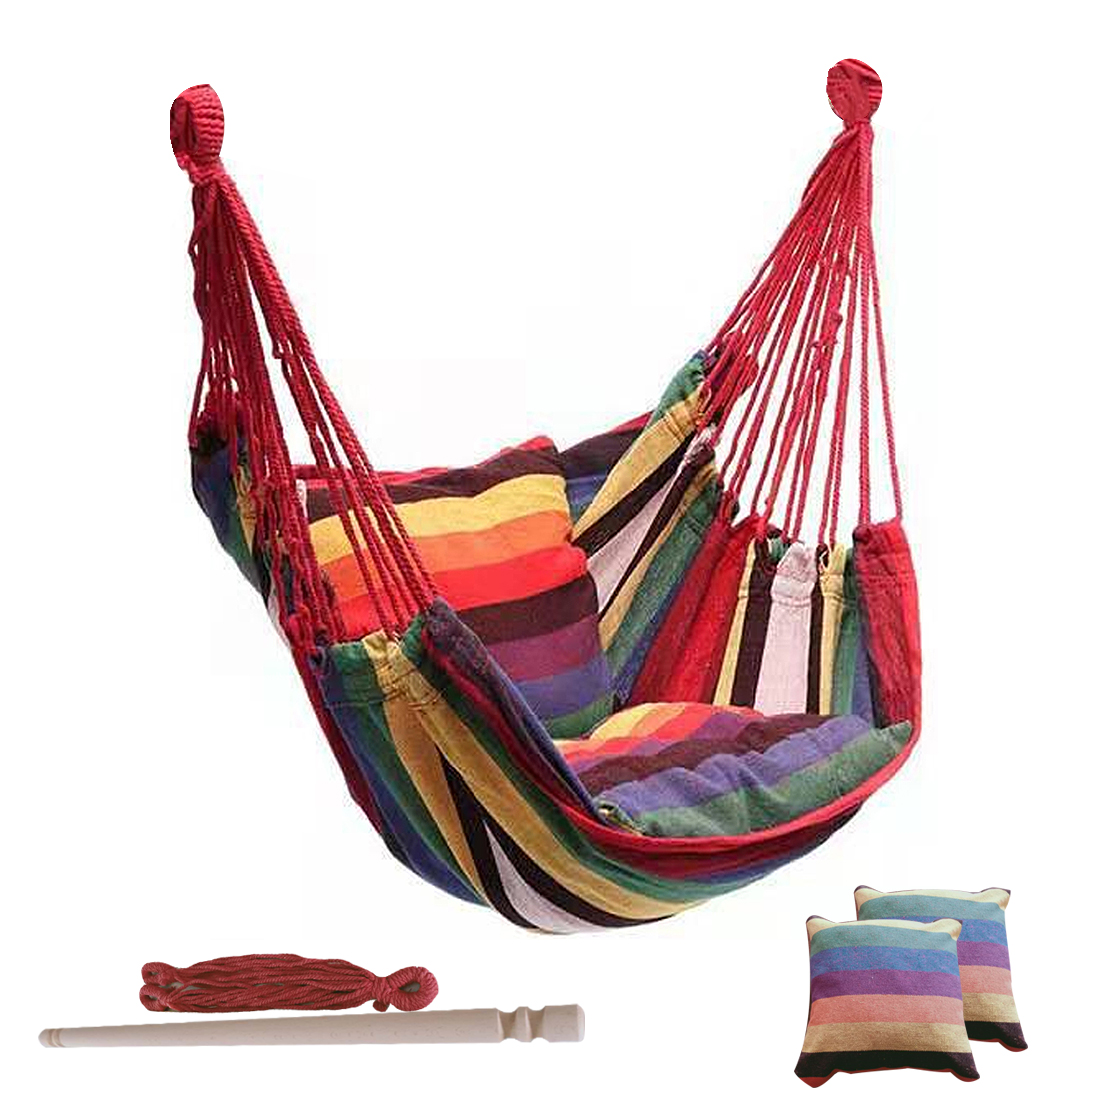 Portable Hanging Rope Hammock Chair Swing Seat, Travel Camping  Hammock Chair Relax Hanging Swing Chair For Indoor/Outdoor